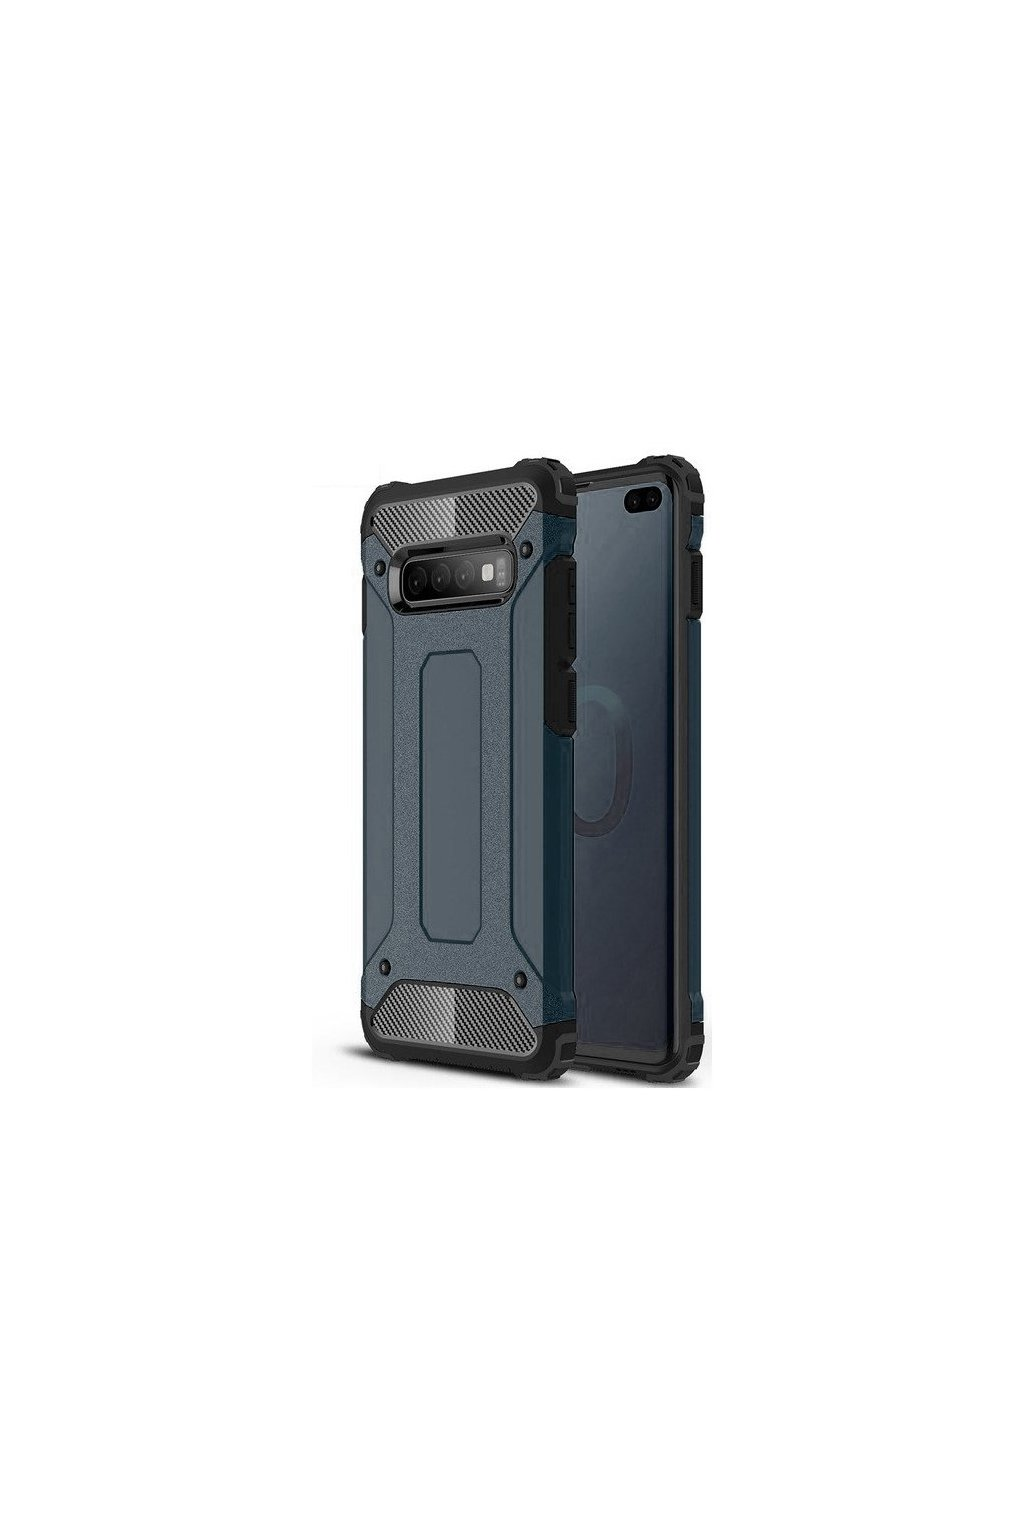 eng pl Hybrid Armor Case Tough Rugged Cover for Samsung Galaxy S10 Plus blue 46581 1